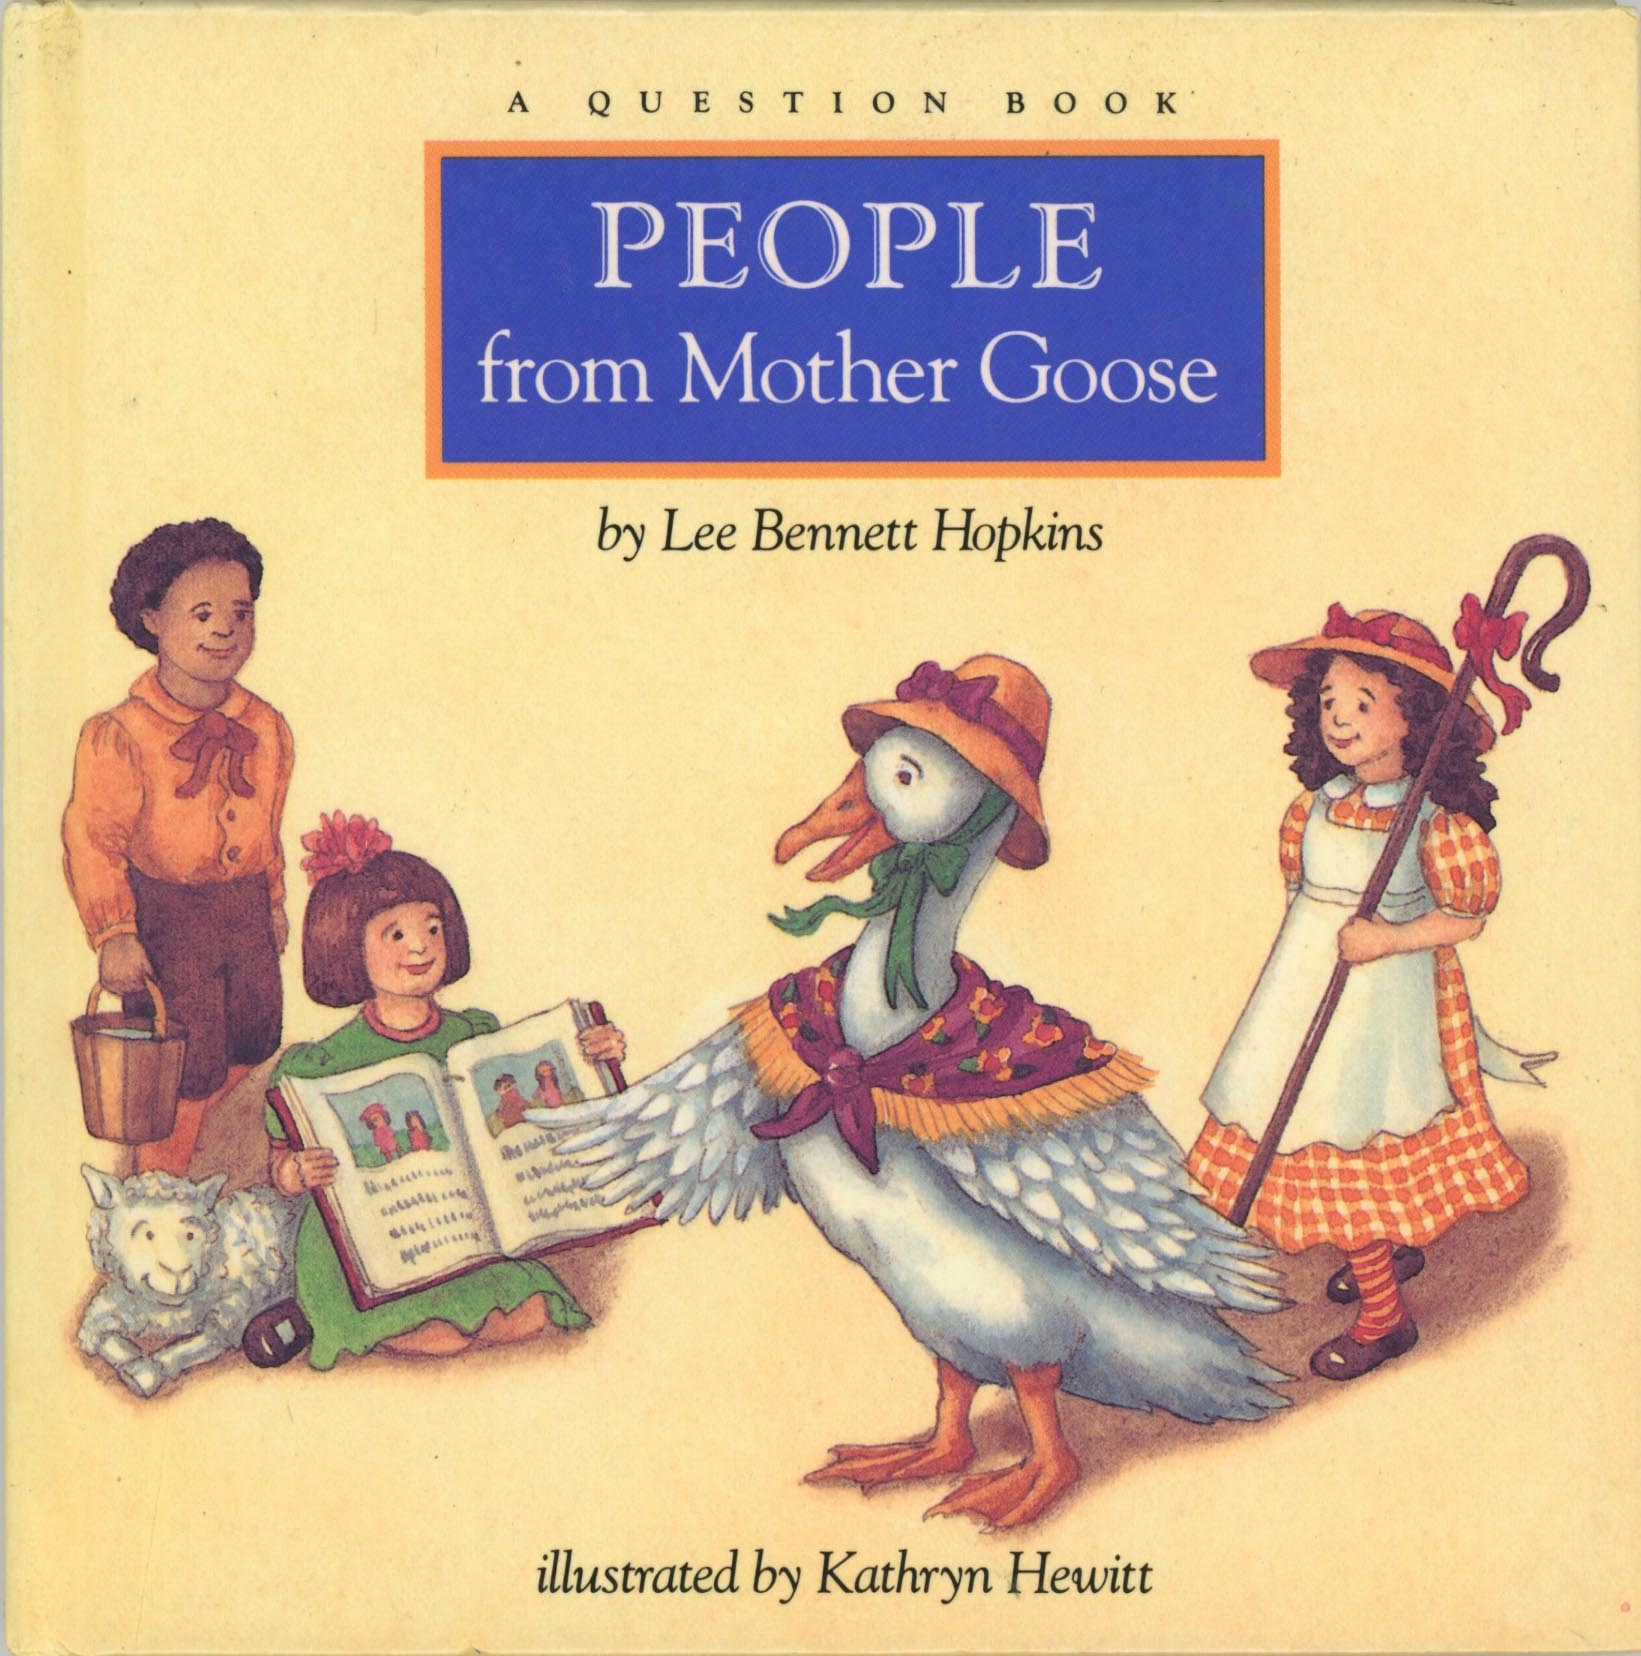 People from Mother Goose - Lee Bennett Hopkins, illustrated by Kathryn HewittHarcourt 1989Classic Mother Goose rhymes become a guessing game in this innovative lift-the-flap book.